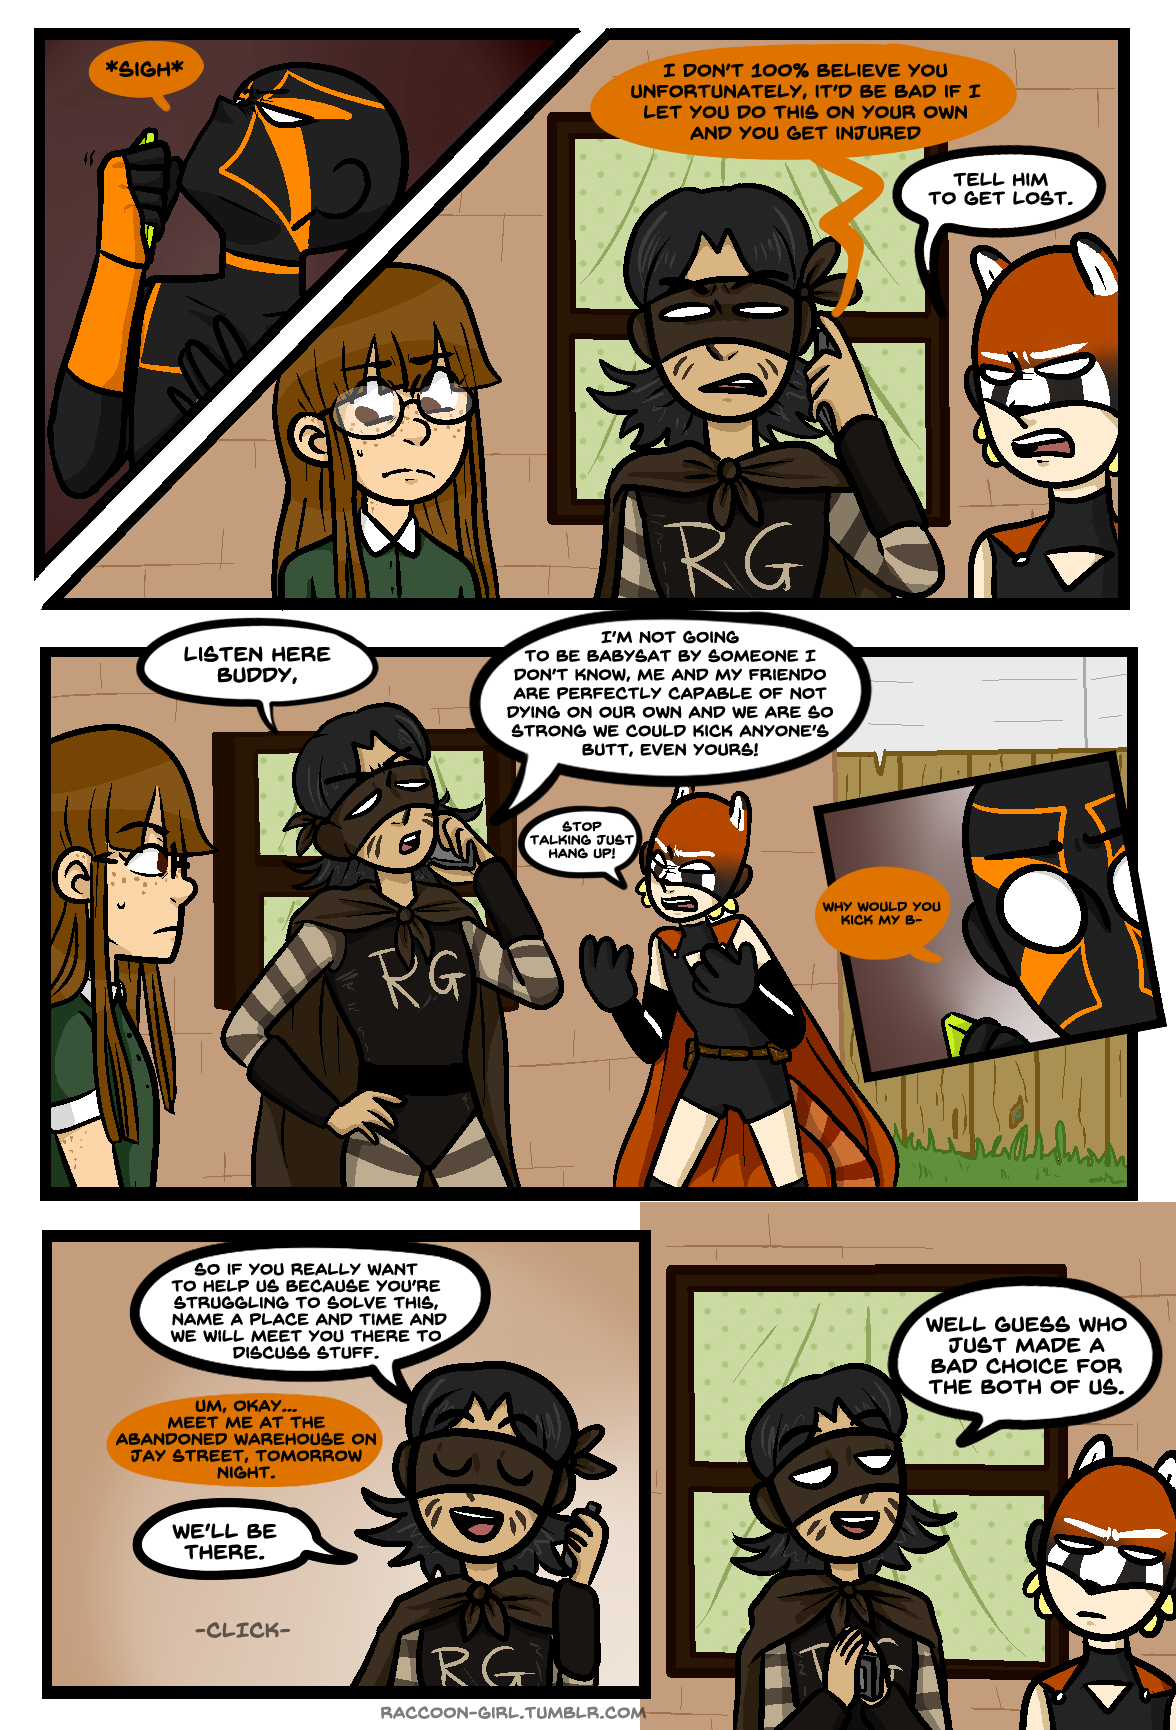 raccoongirl-page45